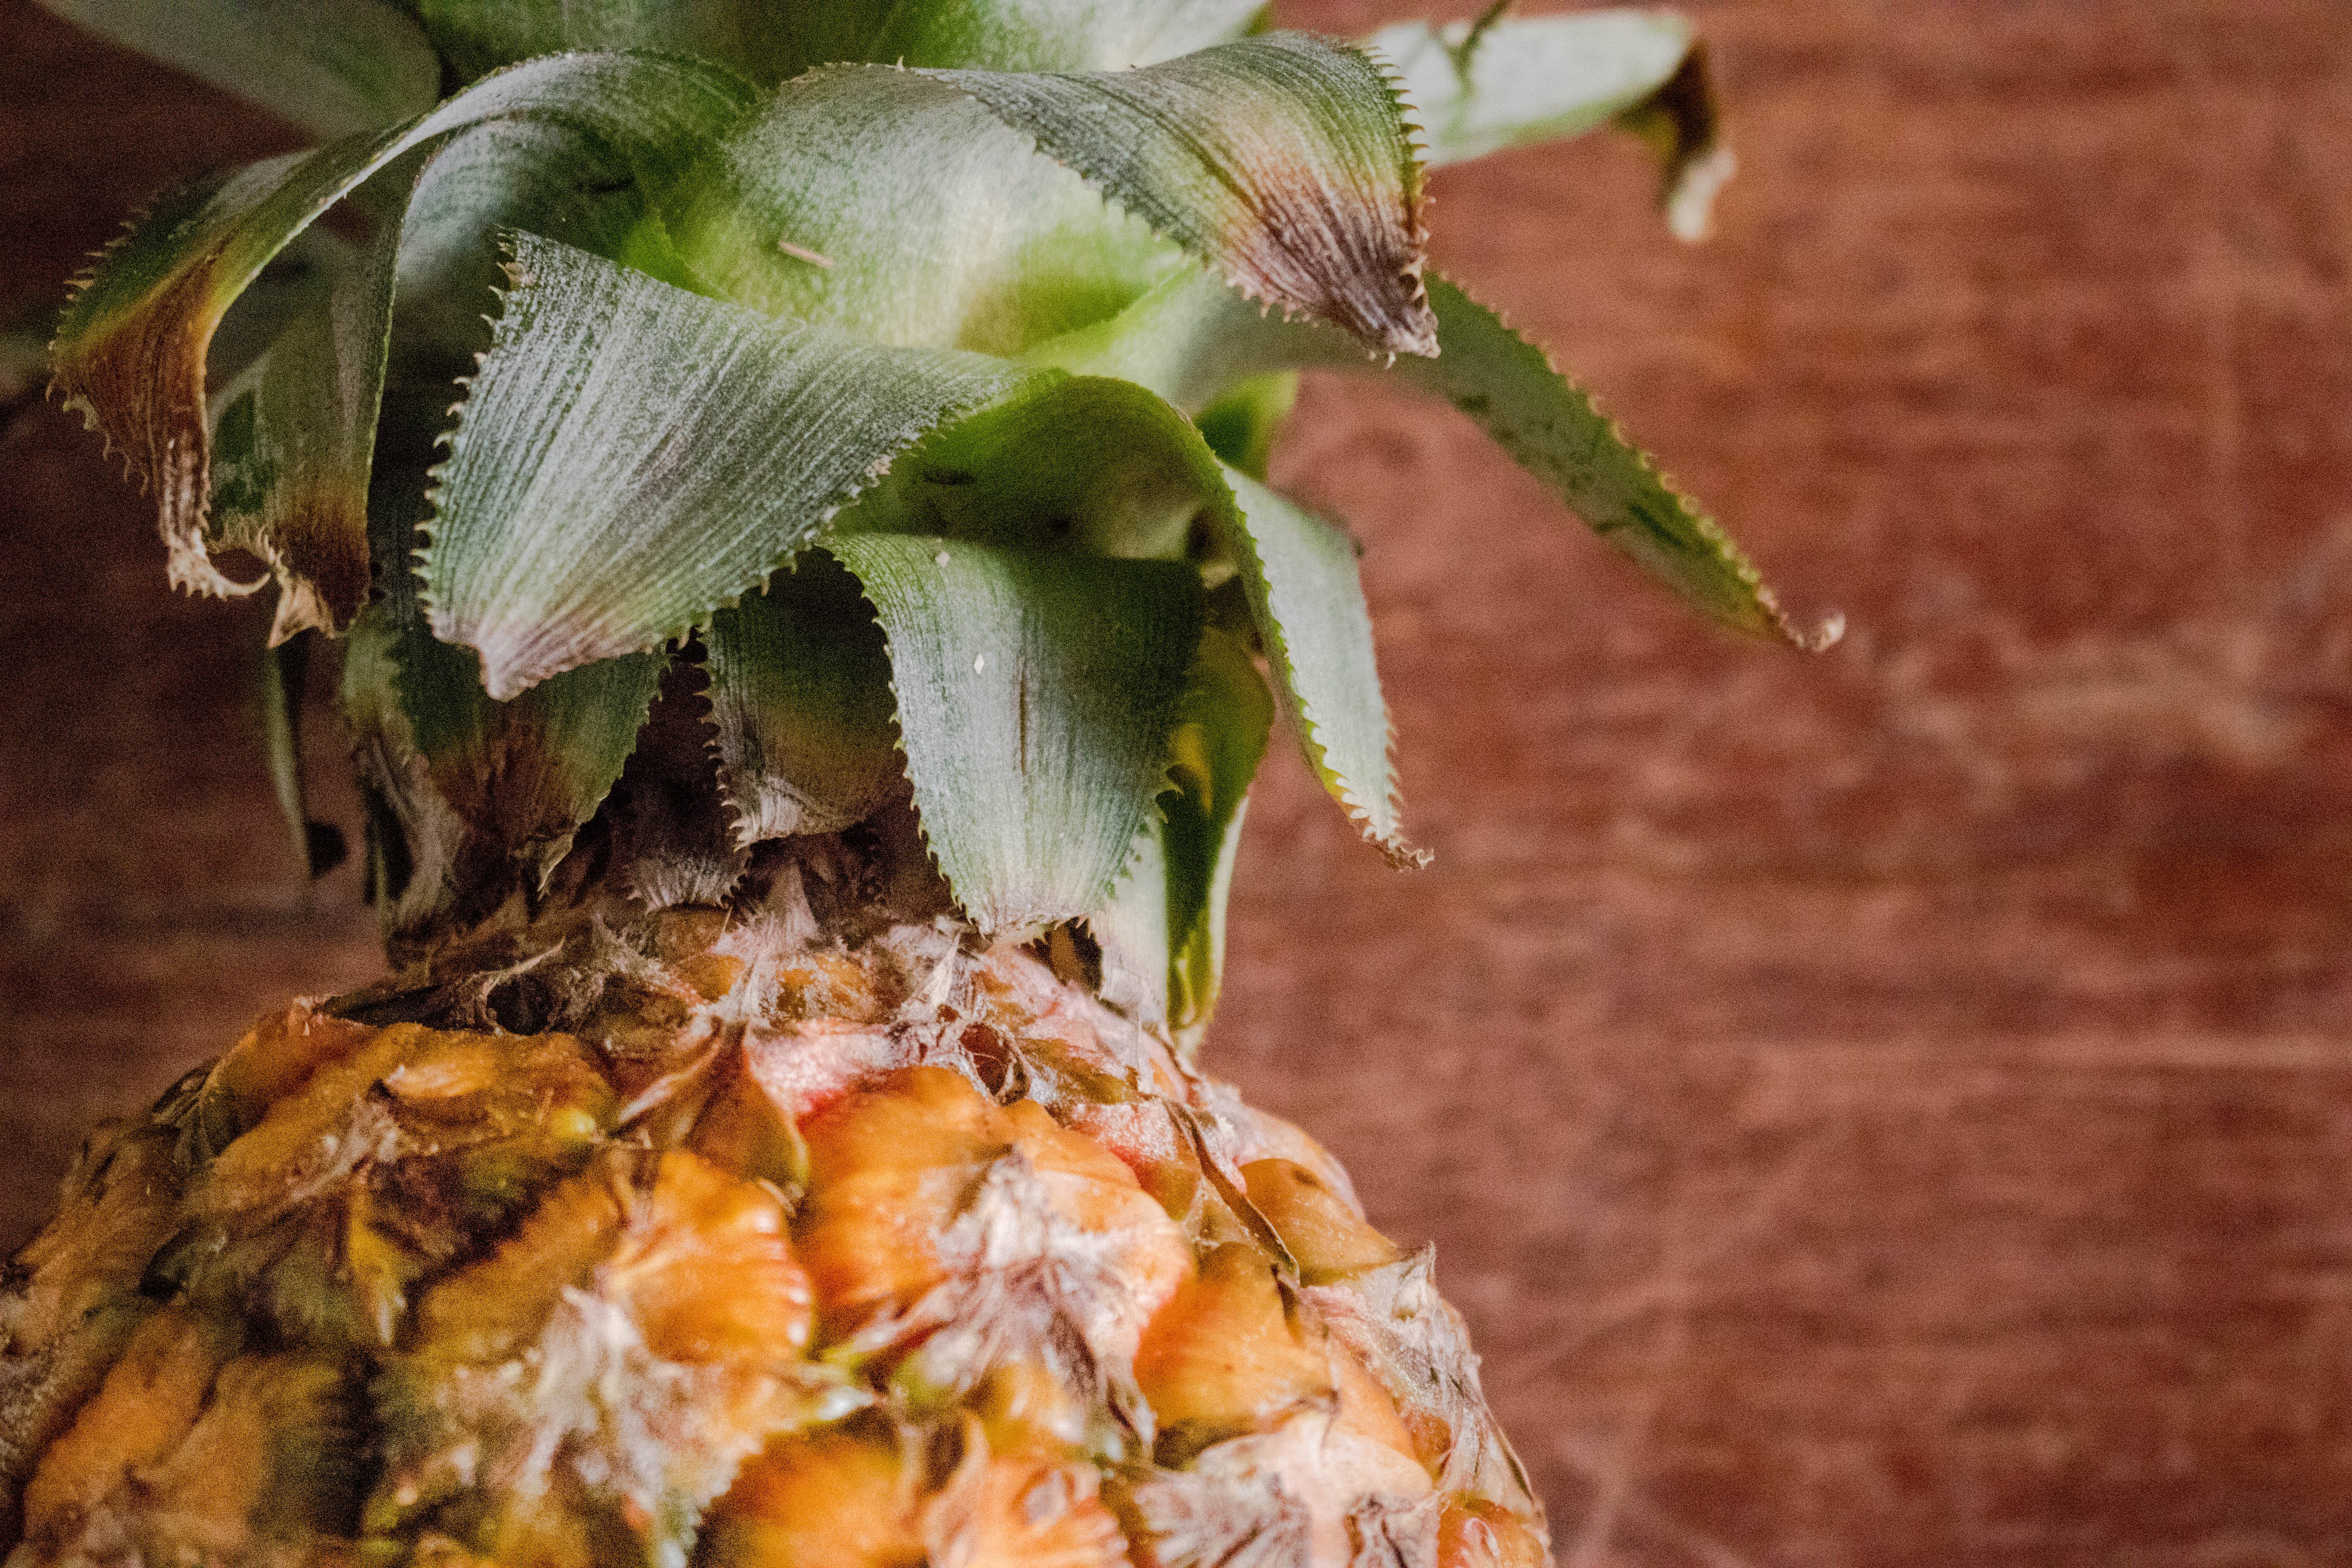 Gratis stockfoto met ananas, bloemen, close-up, eten